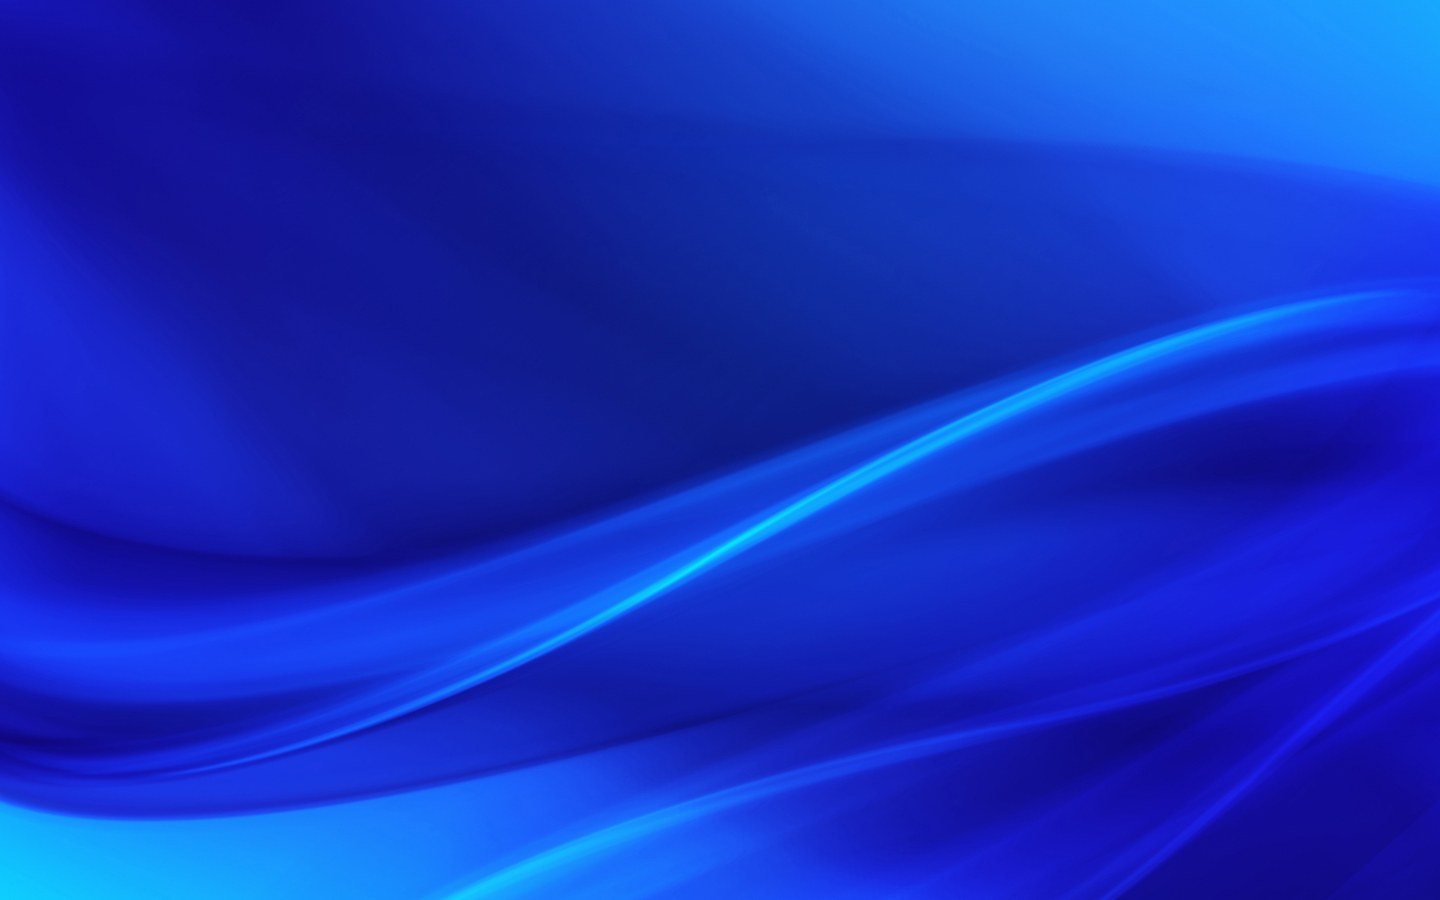 Blue Abstract Wallpapers 1440x900